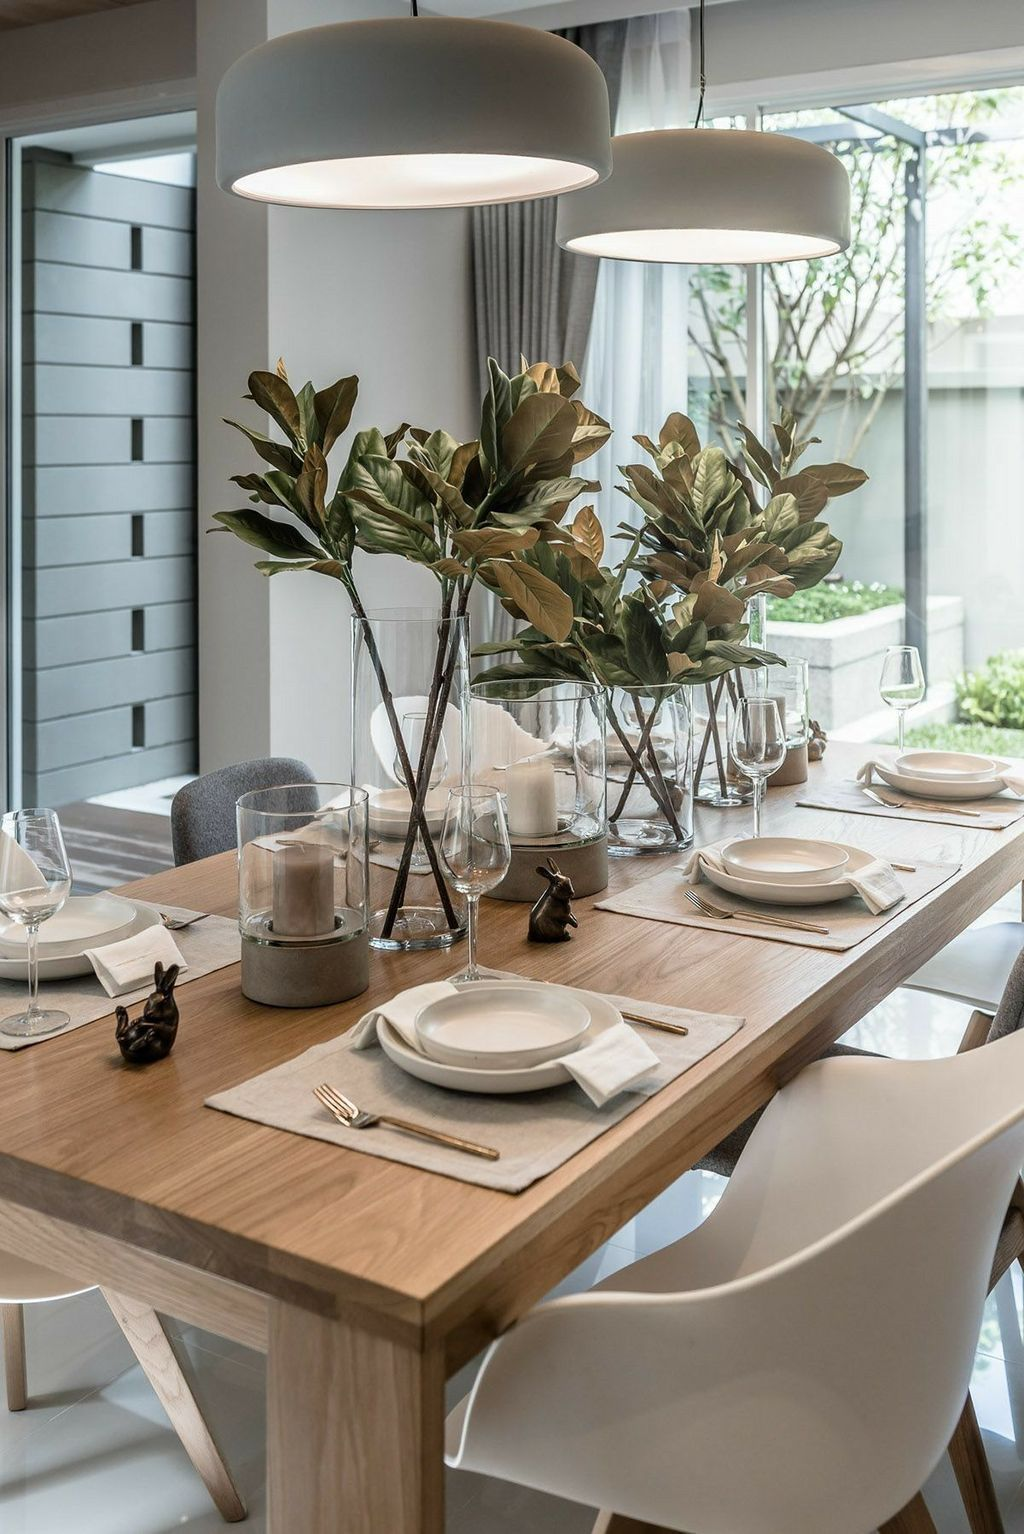 27+ Idee deco salle a manger moderne inspirations